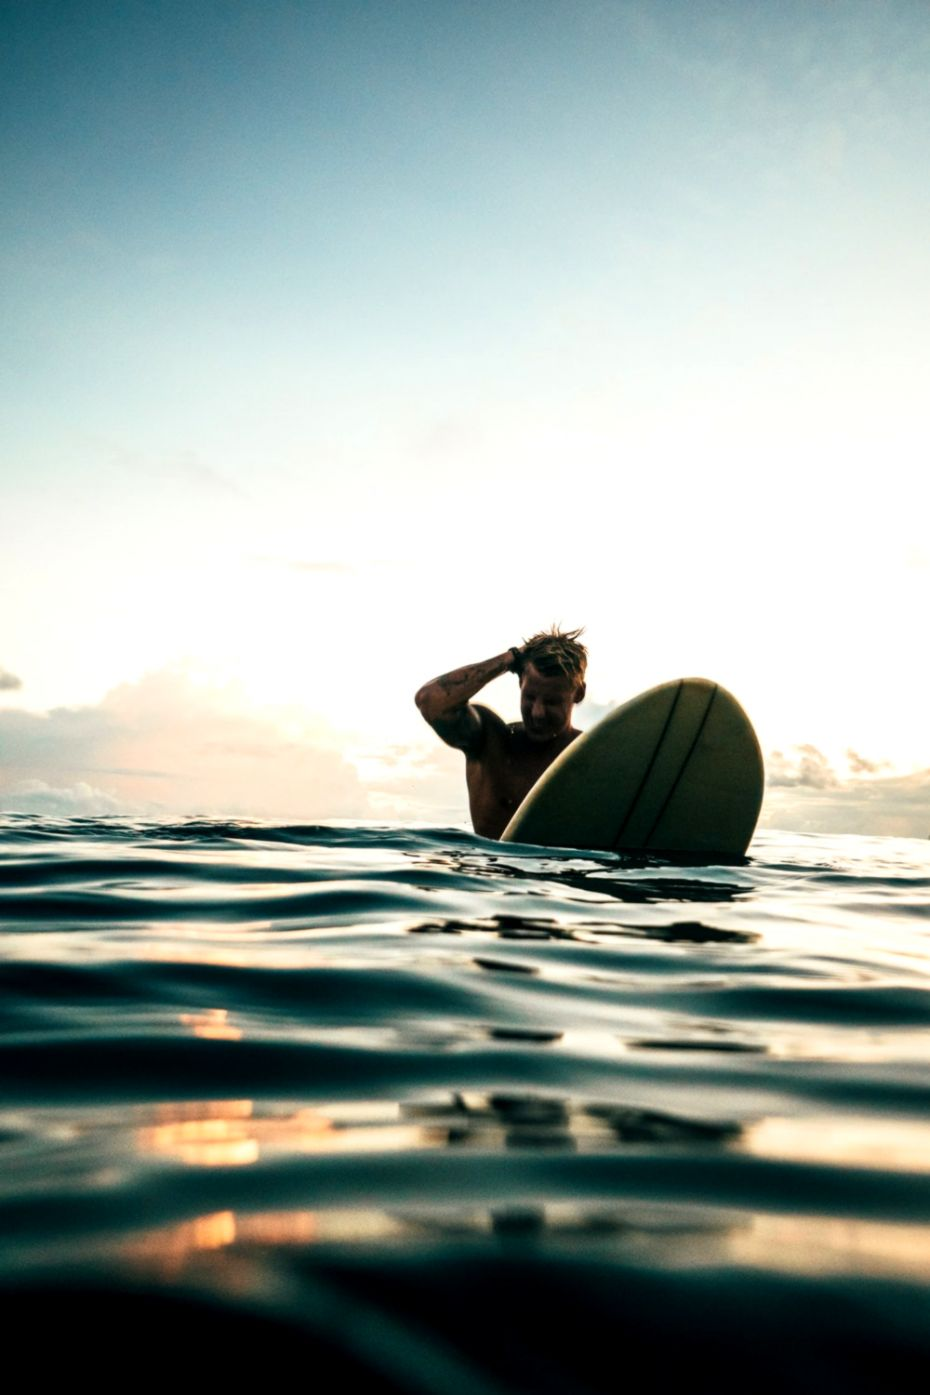 Free Download Wallpaper Water Sports Surfing Hd All In One